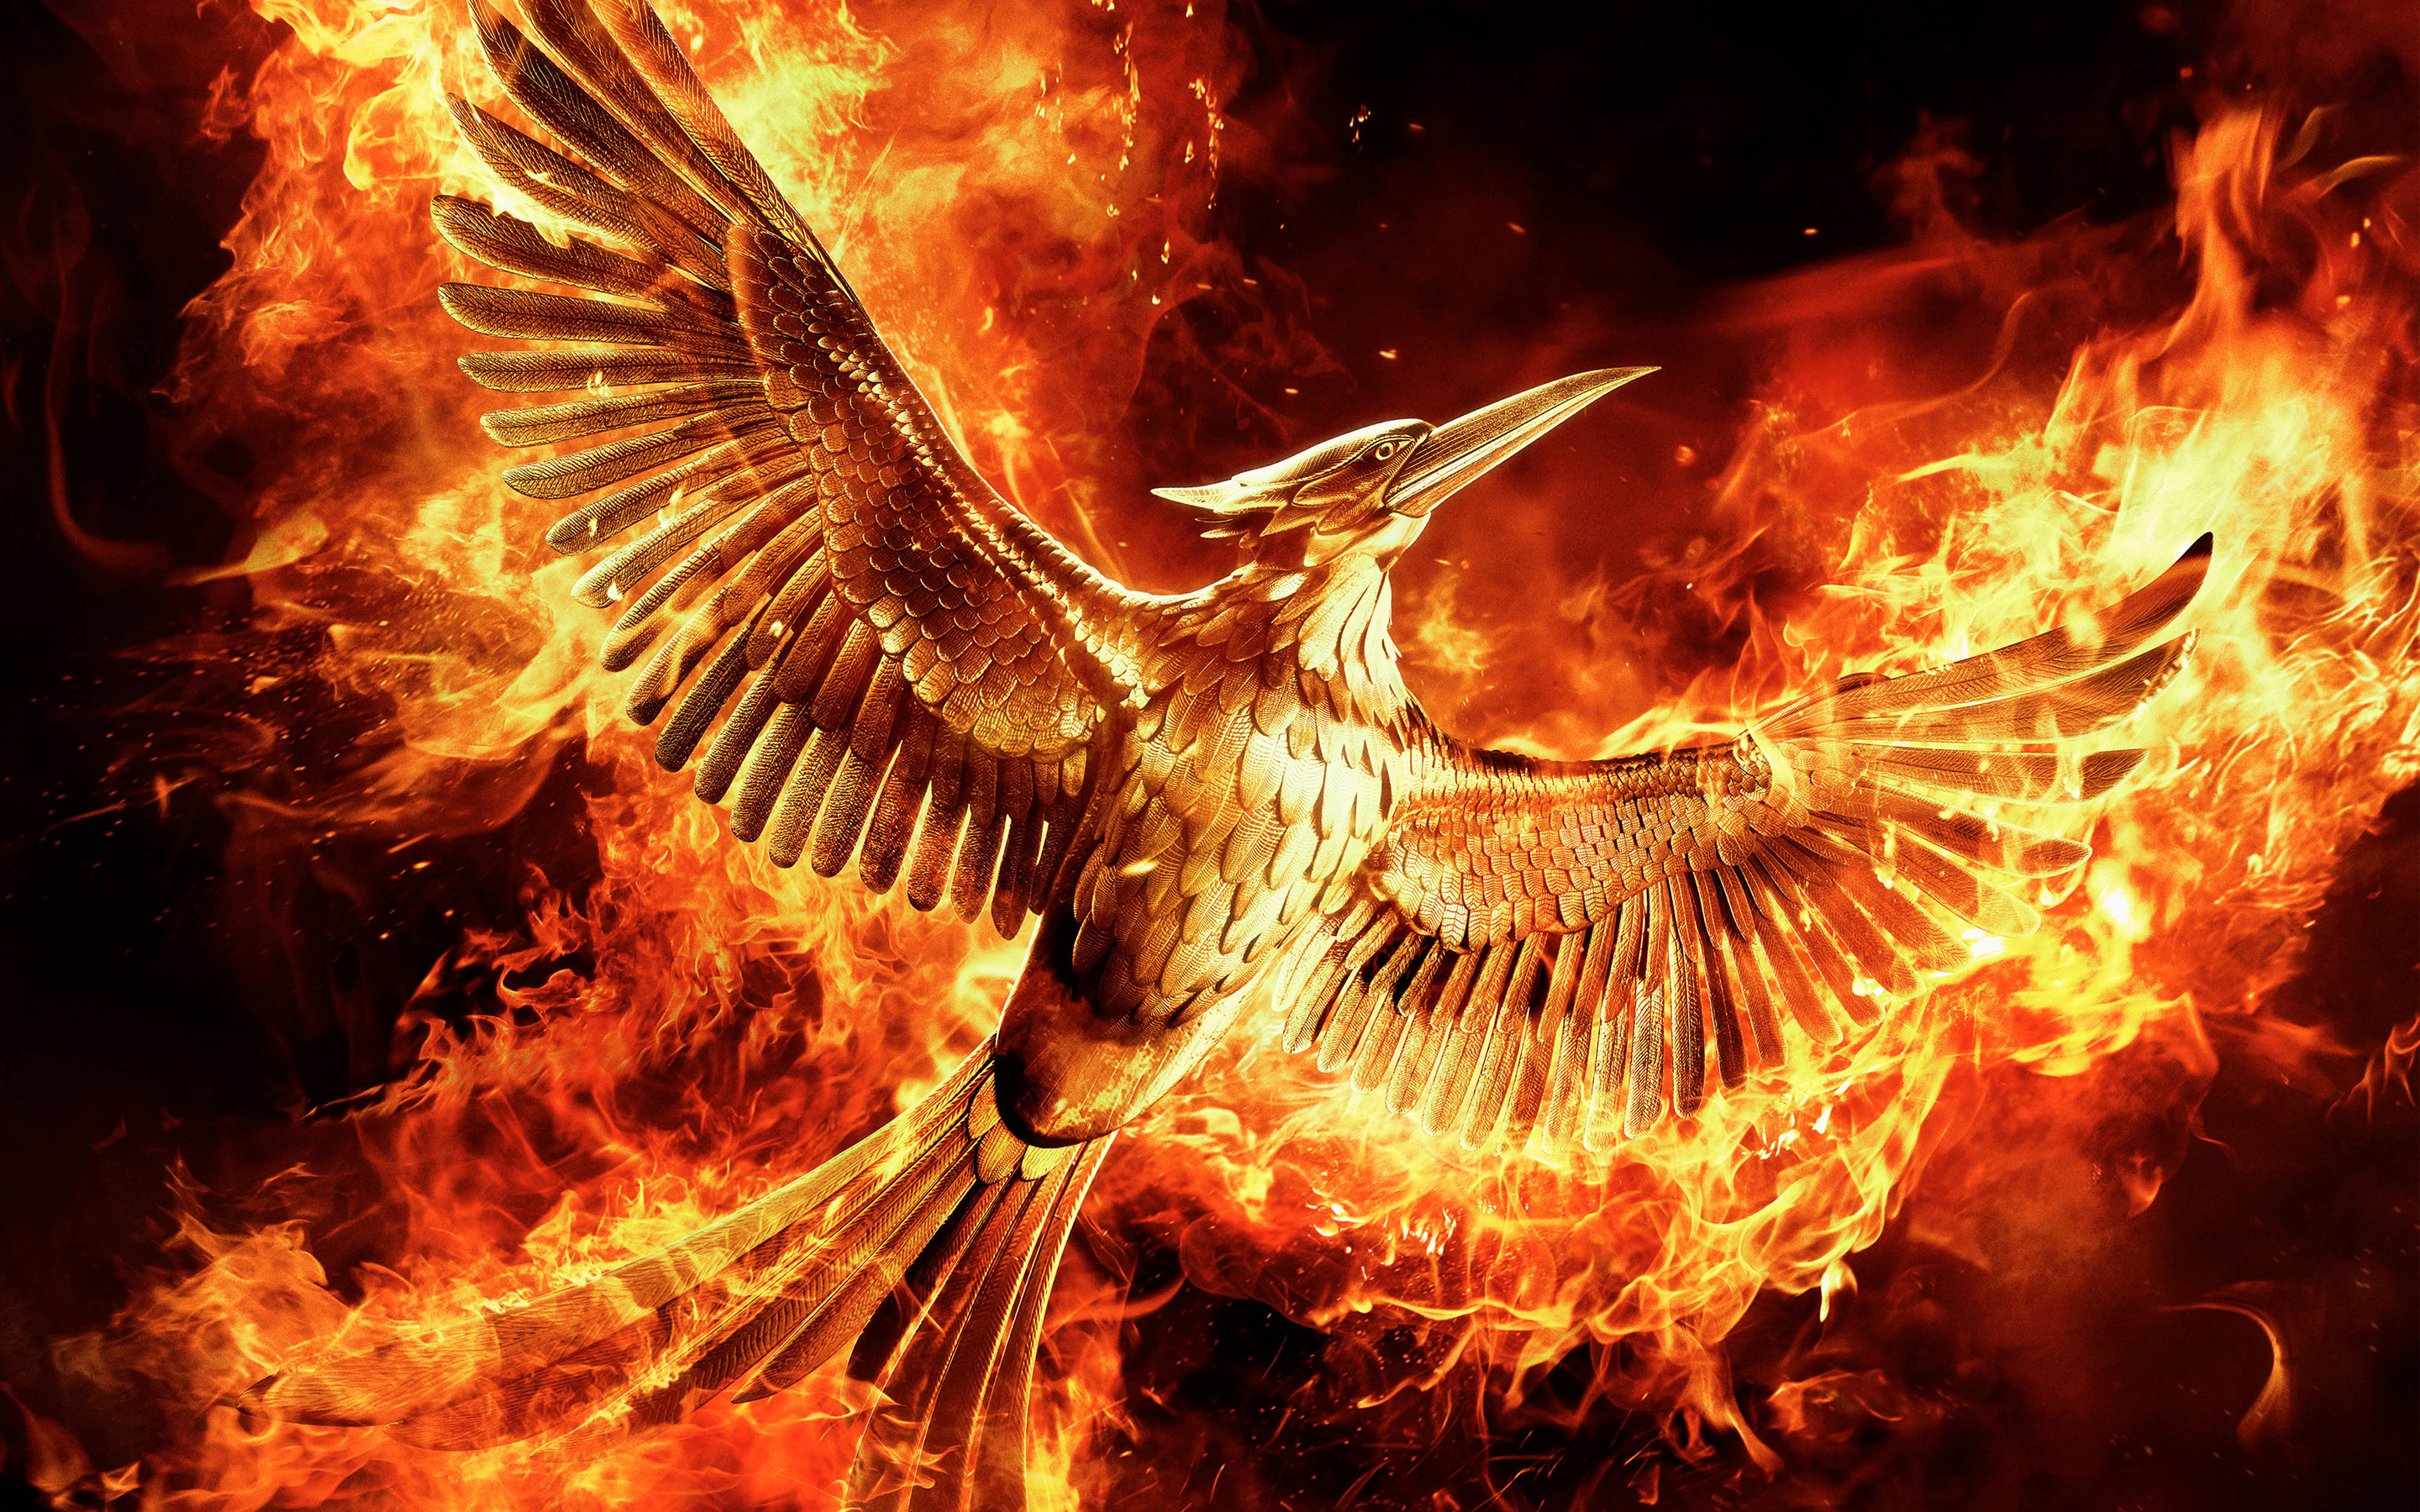 Hunger Games Mockingjay Part 2 Wallpapers   HD Wallpapers 103769 2880x1800